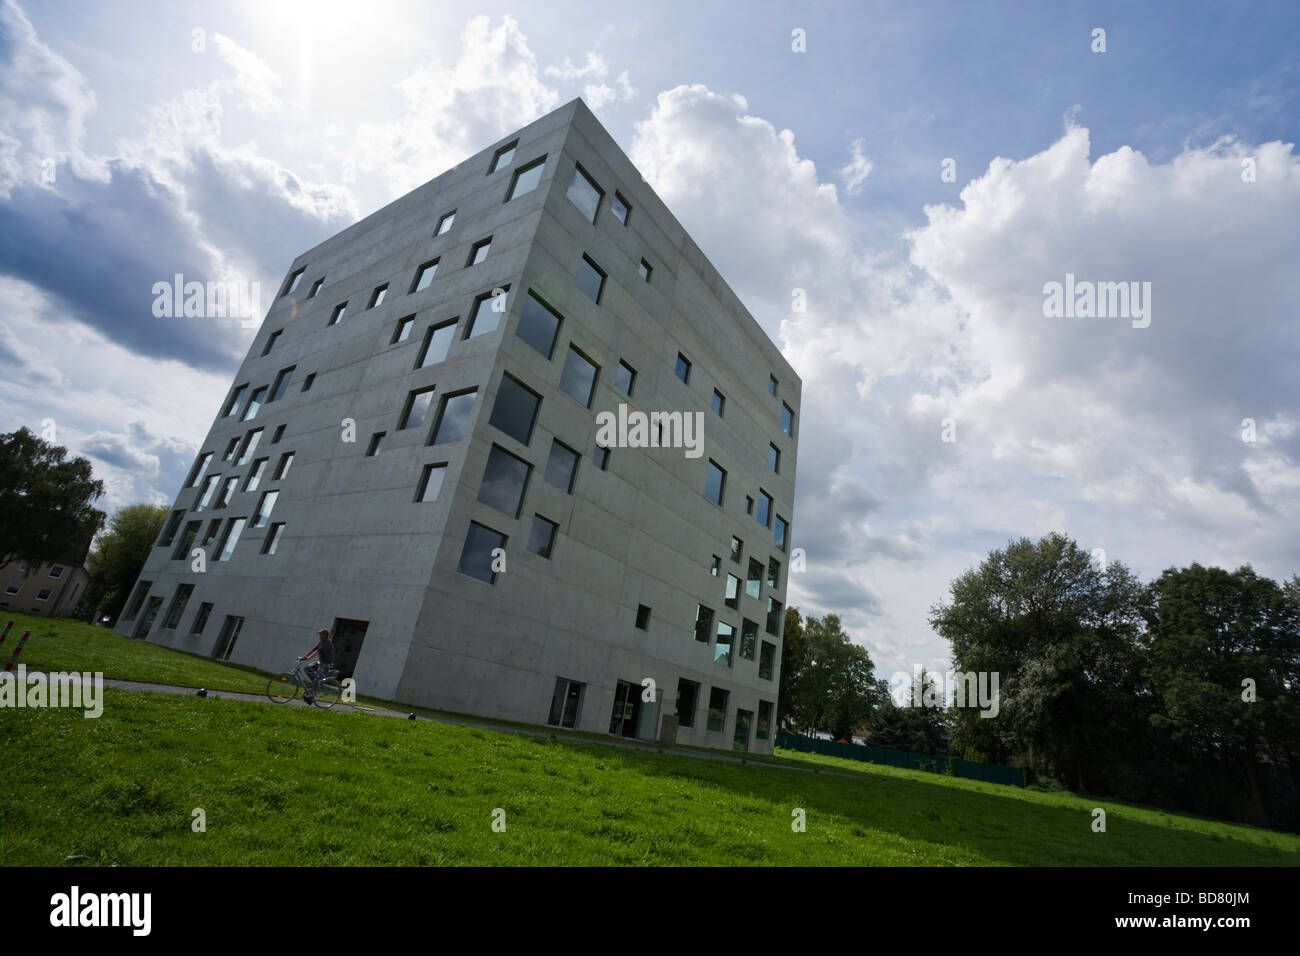 tilted view of Zollverein School For Management And Design building at the Zollverein Coal Mine Industrial Complex - Stock Image